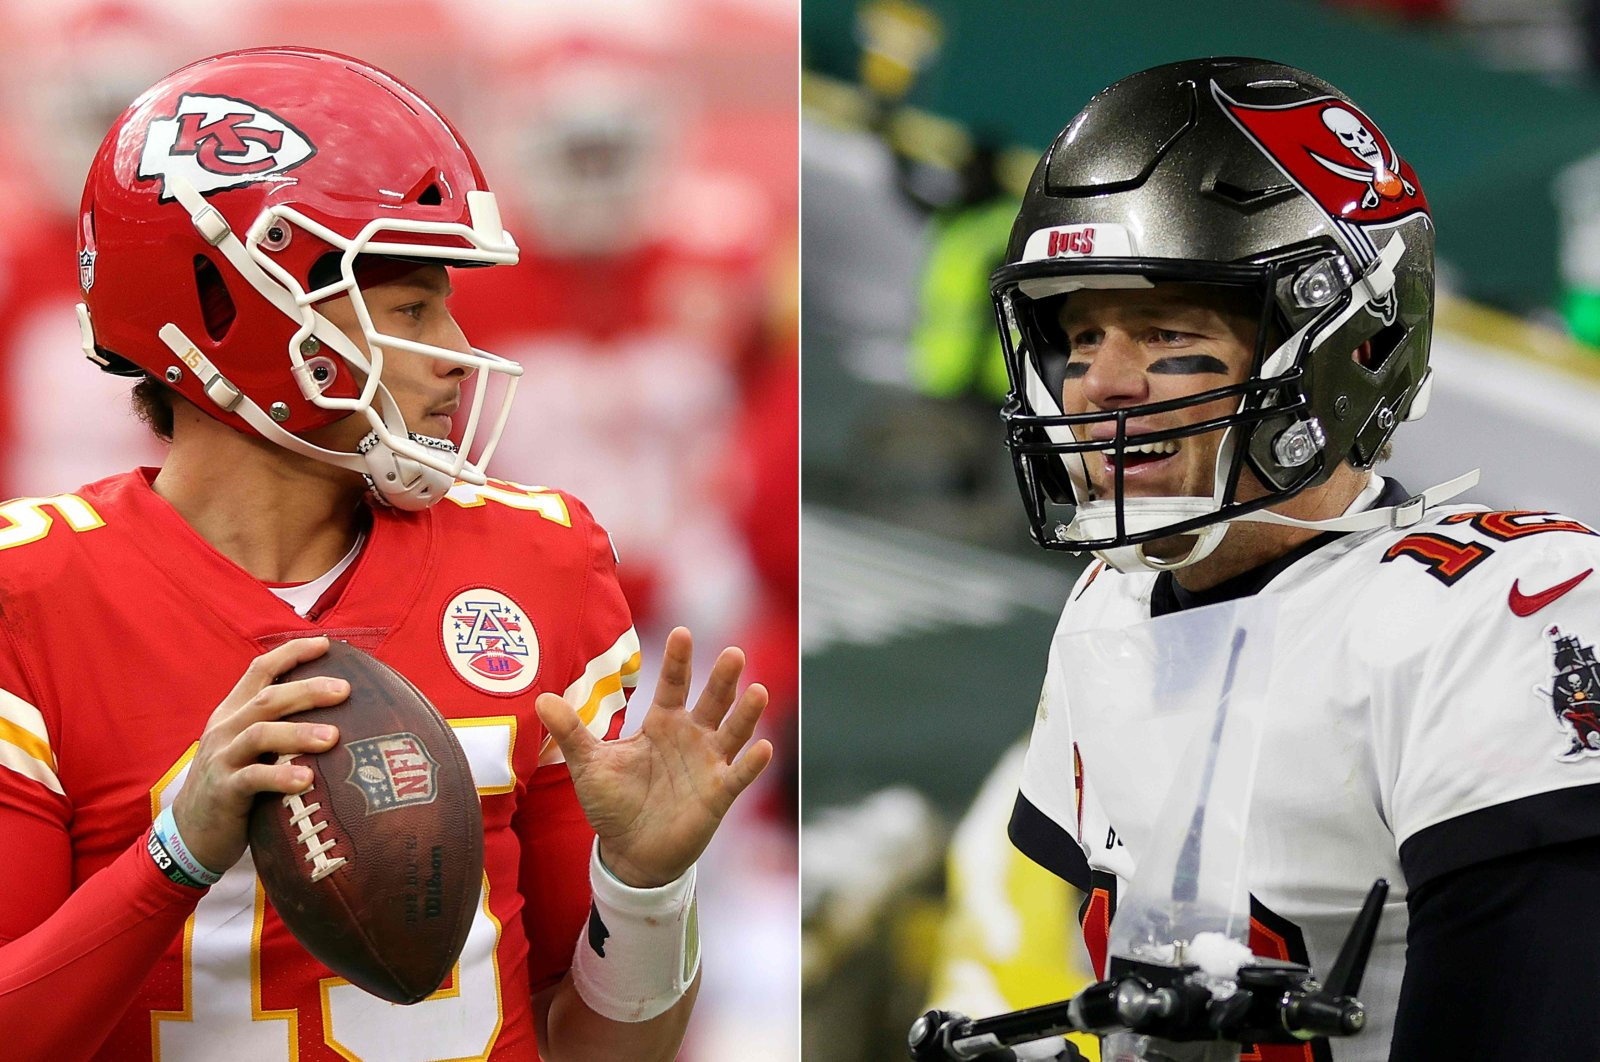 Photo combination of Kansas City Chiefs' quarterback Patrick Mahomes (L) and Tampa Bay Buccaneers' quarterback Tom Brady. (AFP Photo)  The duo guided their respective teams to the Super Bowl 55 scheduled for Feb. 8, 2021.